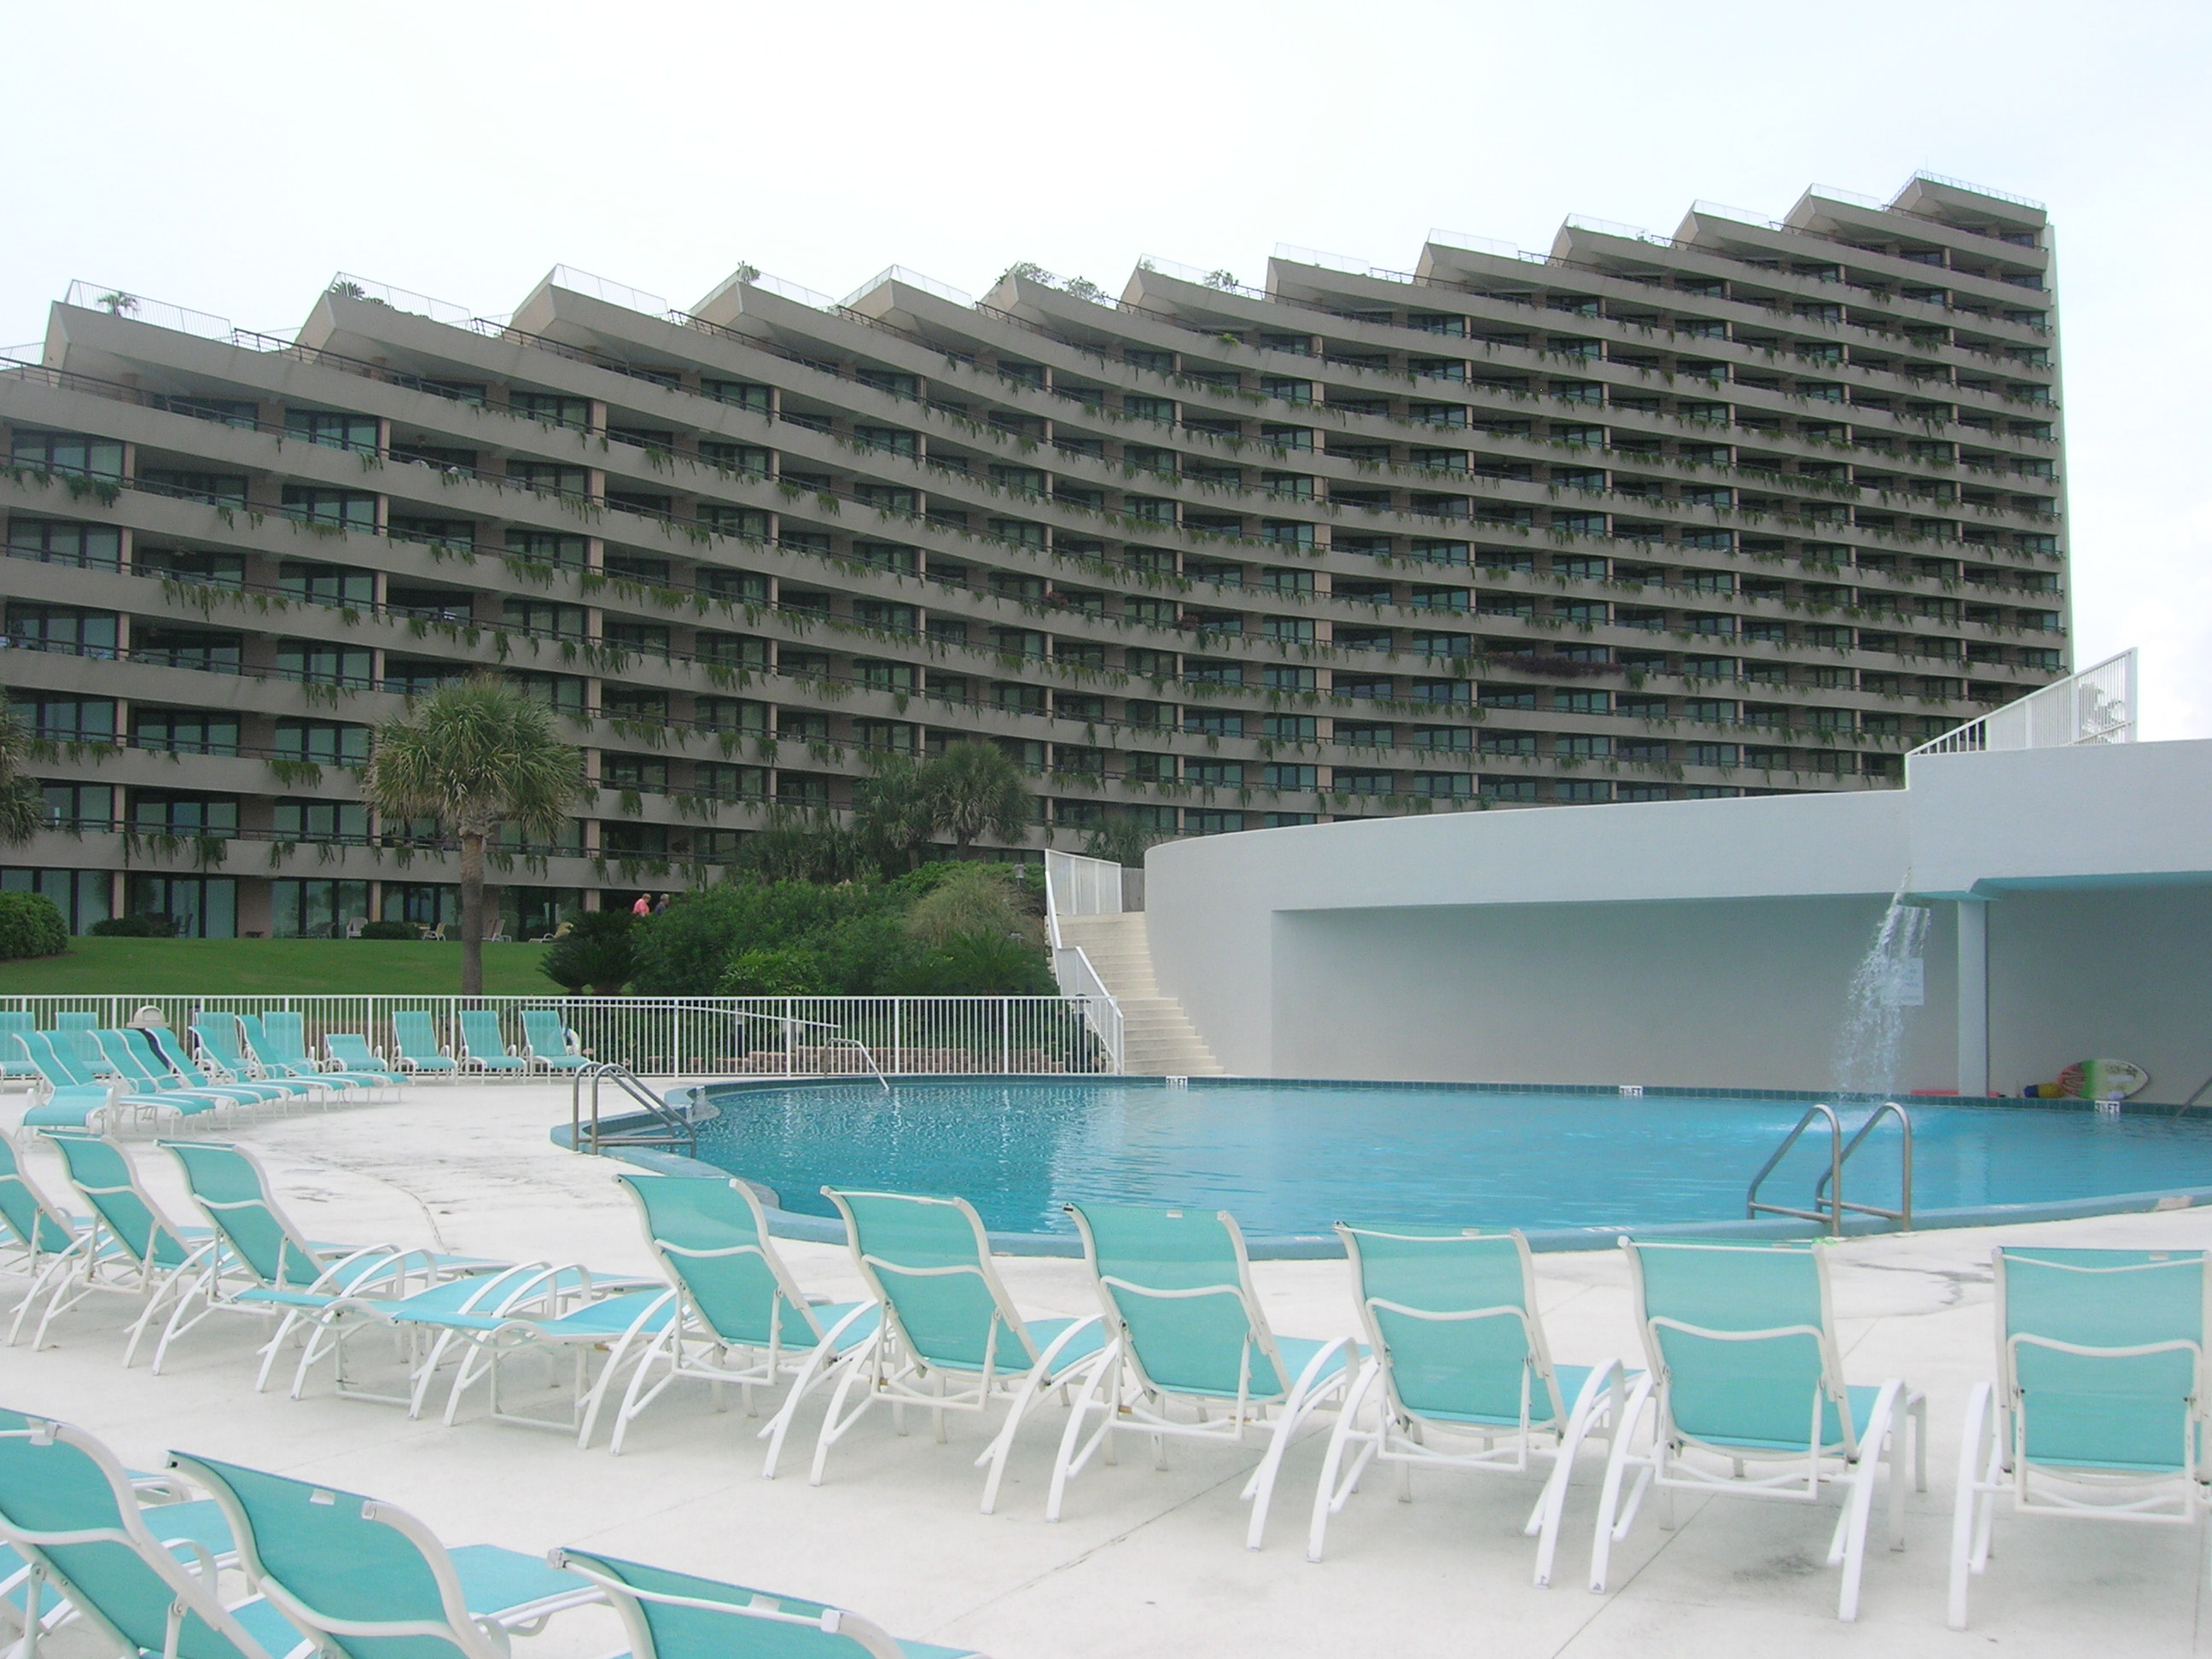 Condos in destin florida rent 3 nights get 1 free - 1 bedroom condos in destin fl on the beach ...